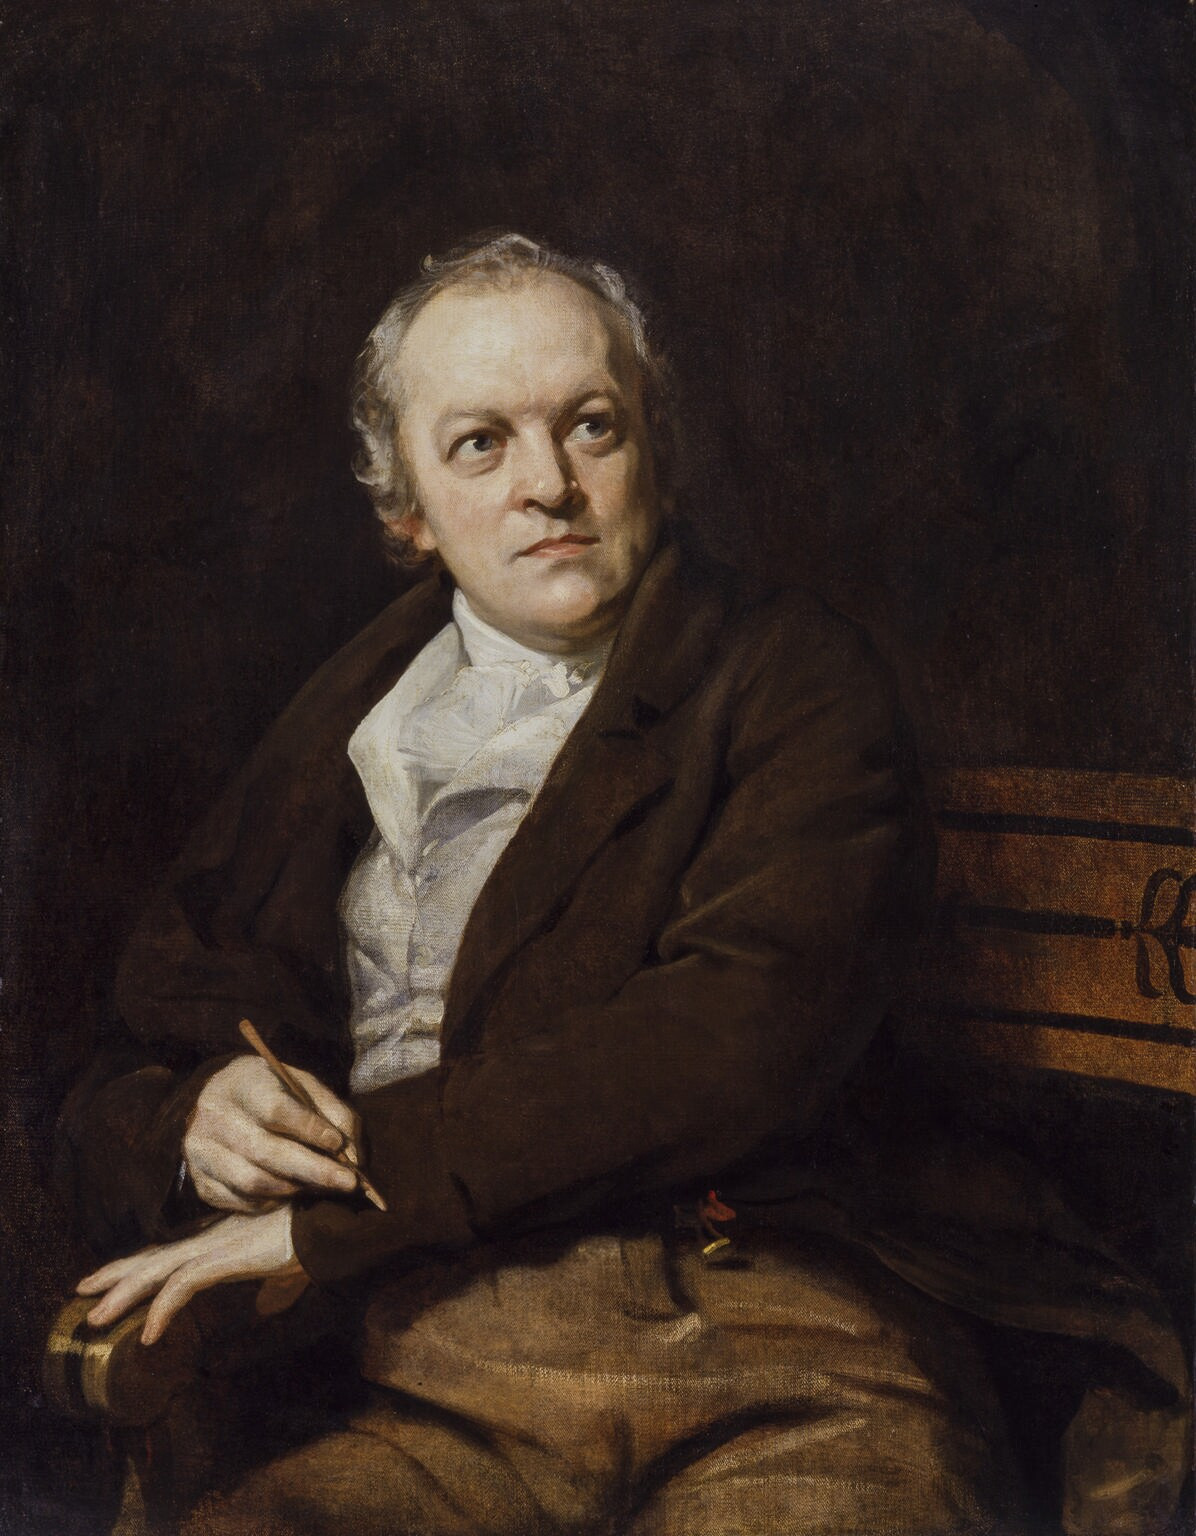 Portrait of William Blake